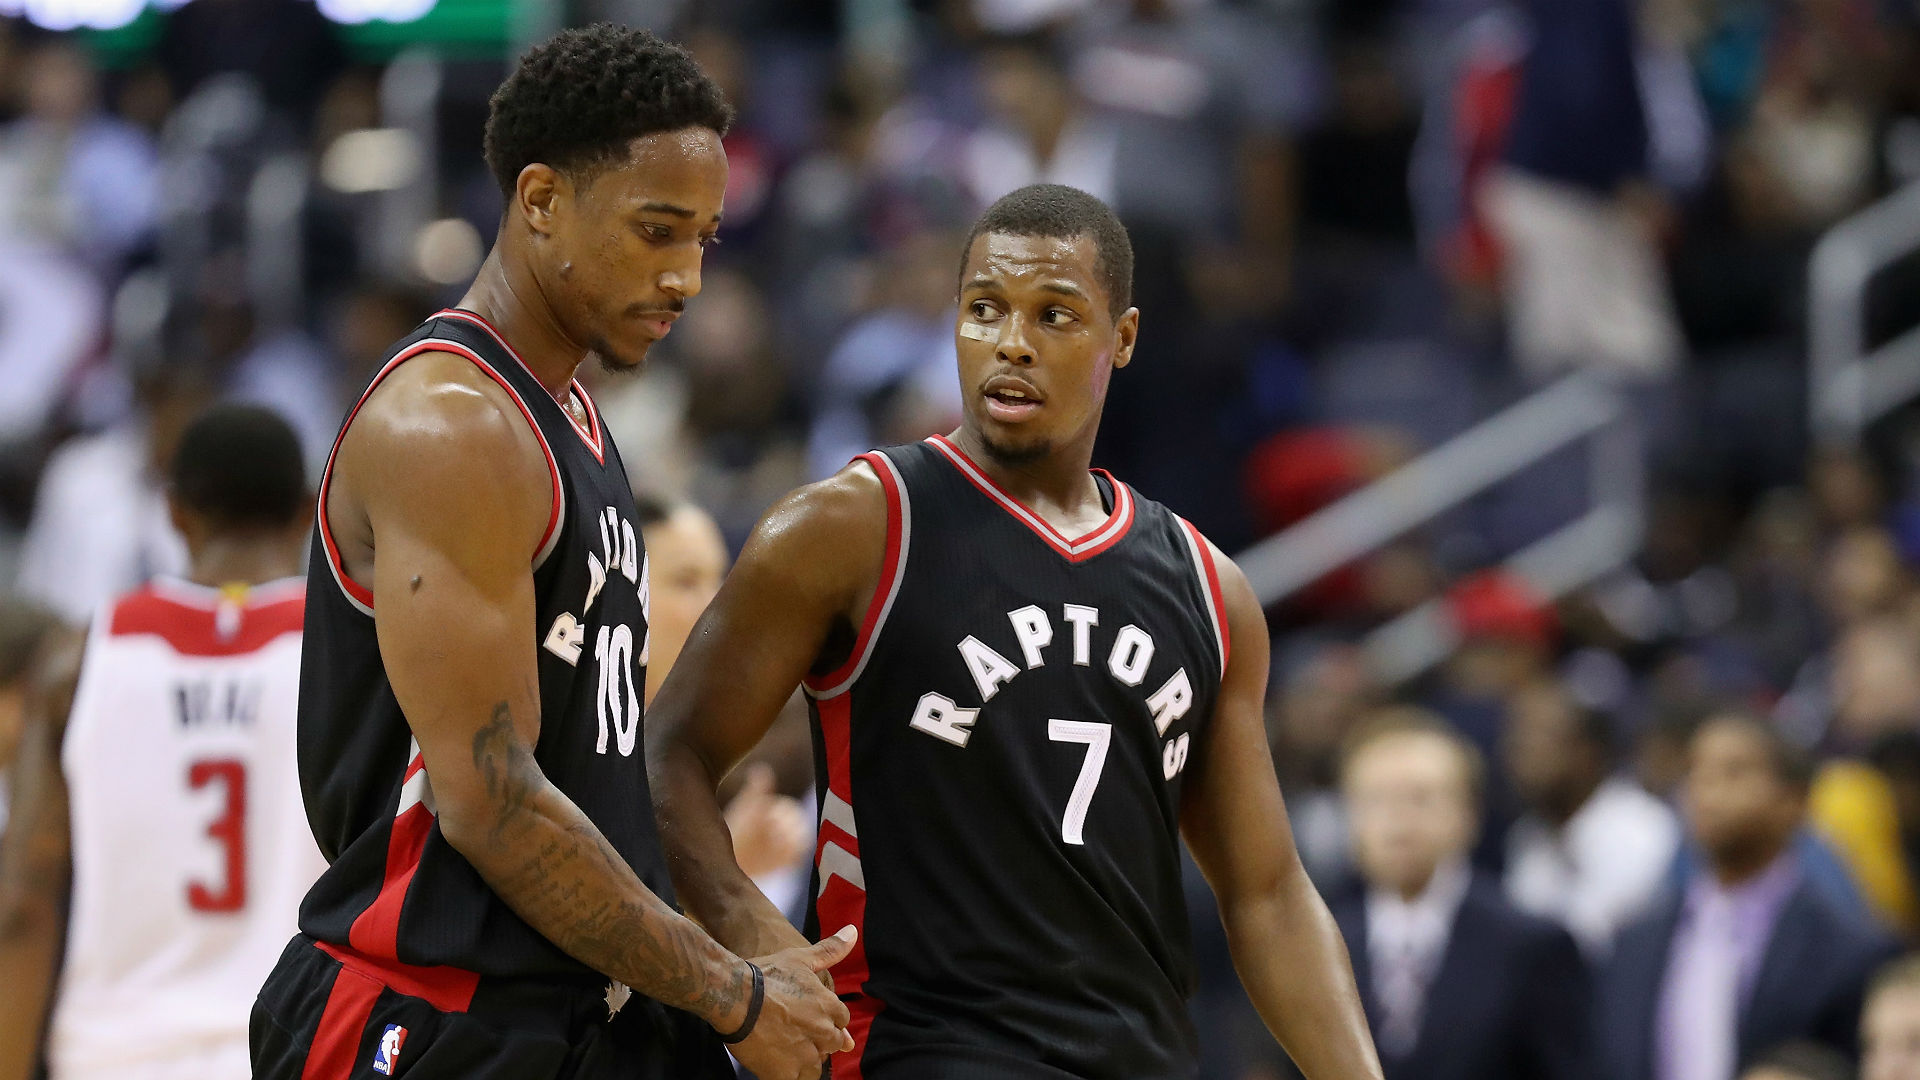 Raptors-Heat fallout: Ibaka to sit, DeRozan hit in pocketbook